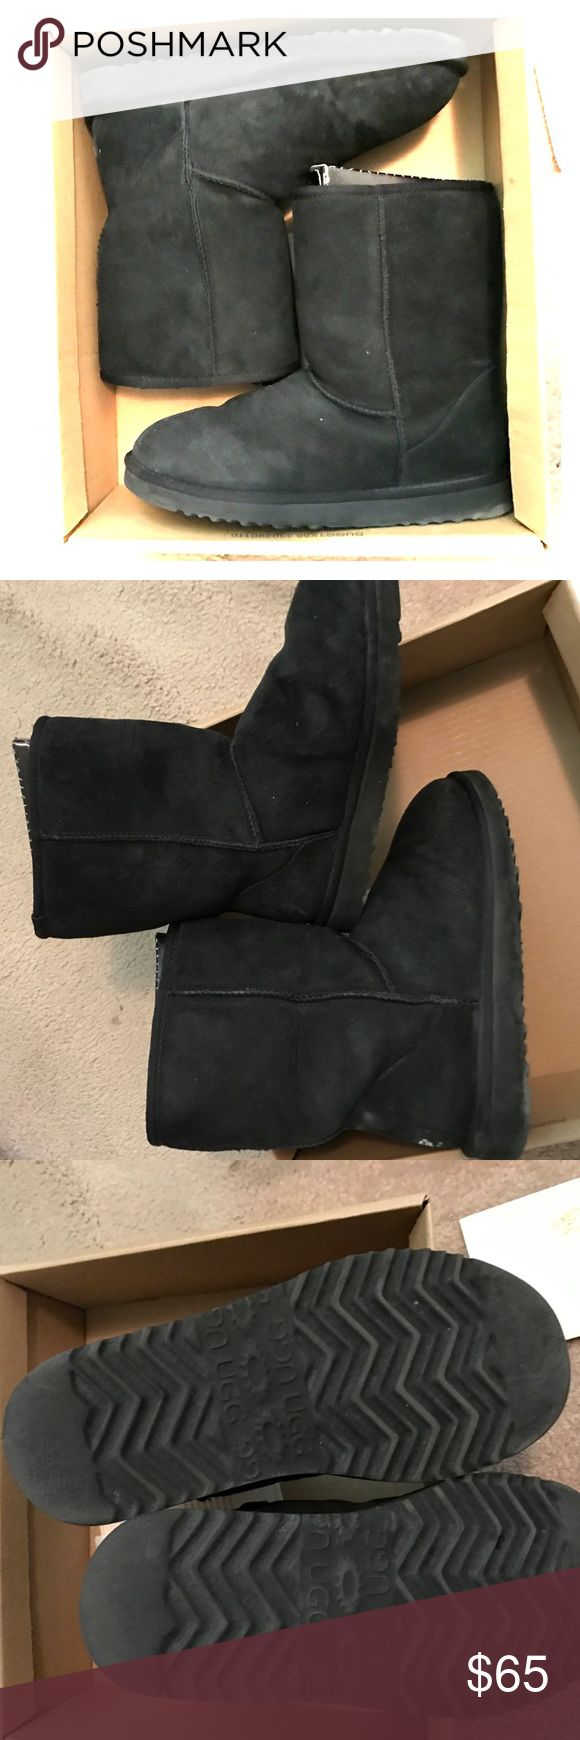 Black Ugg Boots The Original Ugg Boots • black • short • worn only a few times UGG Shoes Winter & Rain Boots